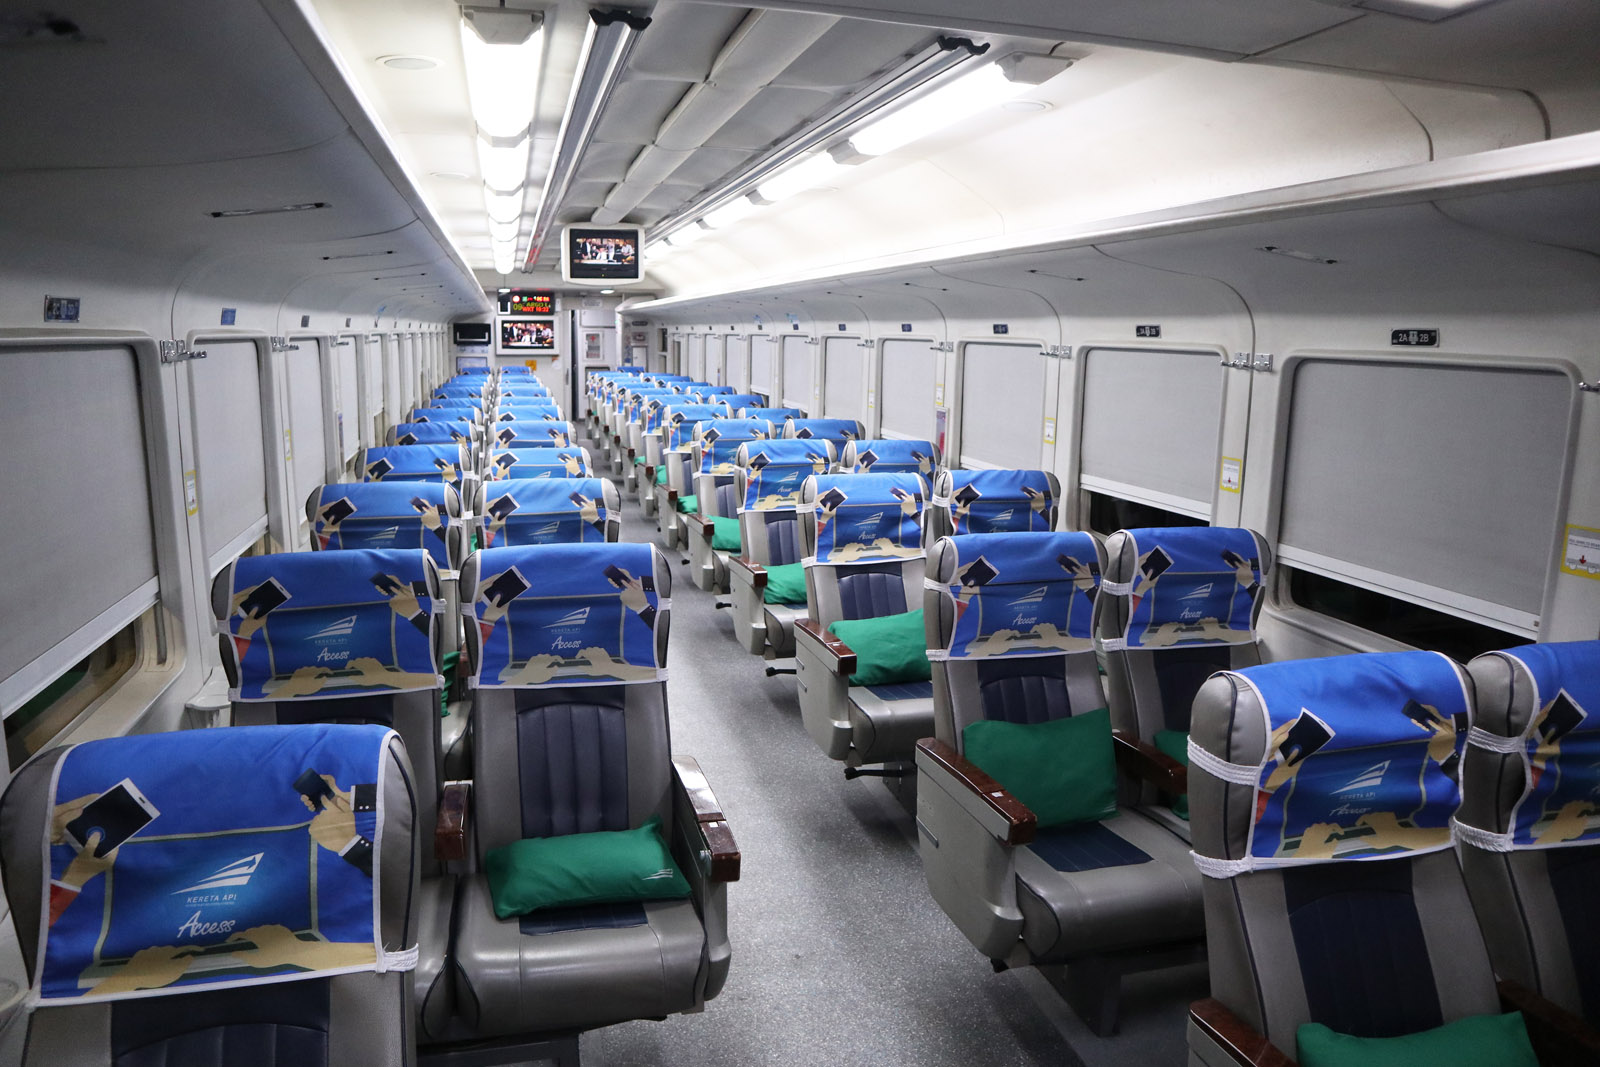 Train Review Argo Lawu Ka8 Kelas Eksekutif Gambir To Solo Balapan Firstmareza Com